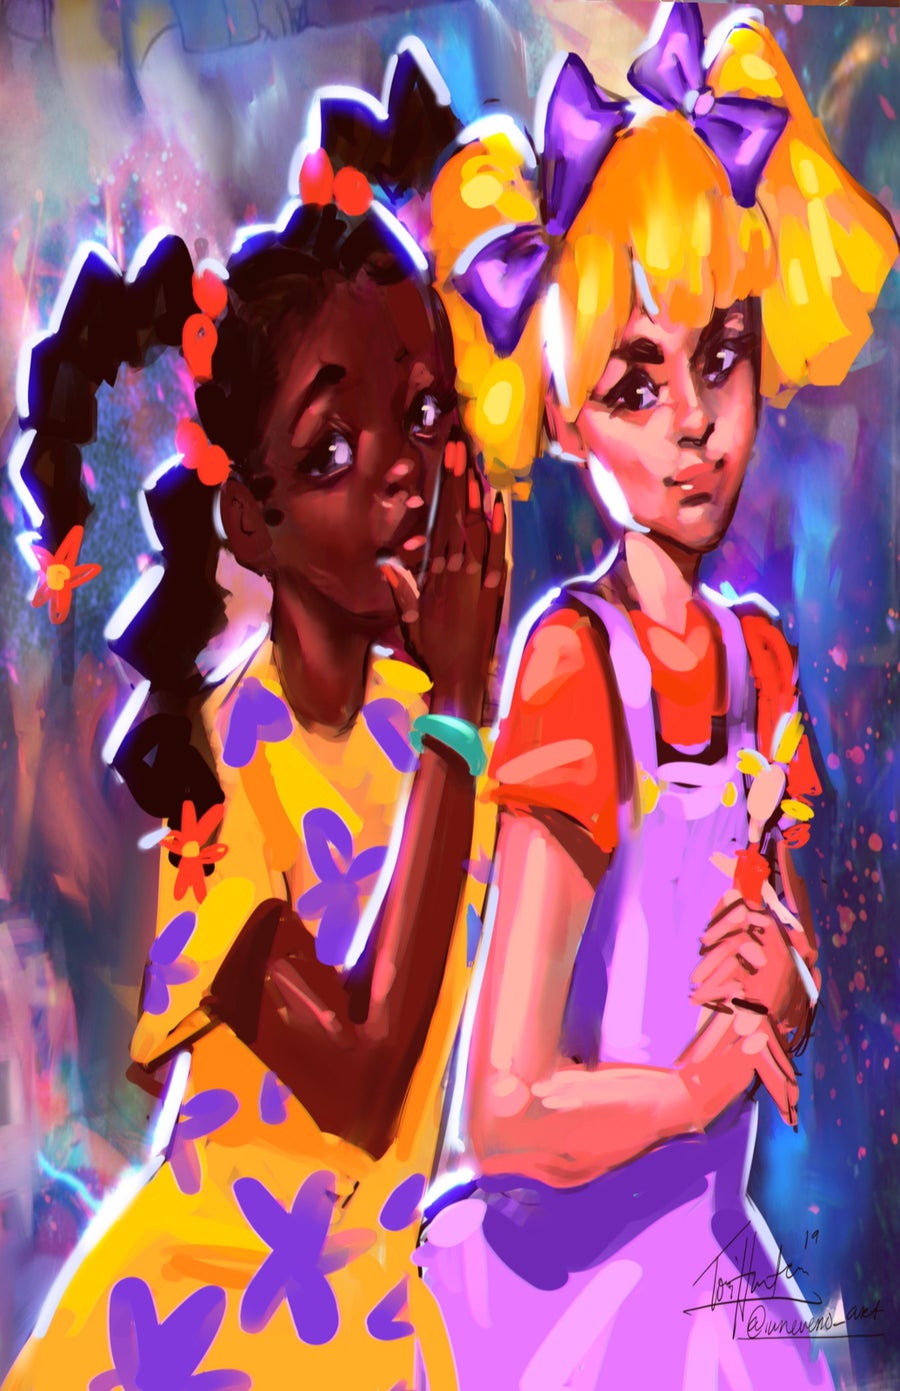 Image of Susie Carmichael and Angelica Pickles